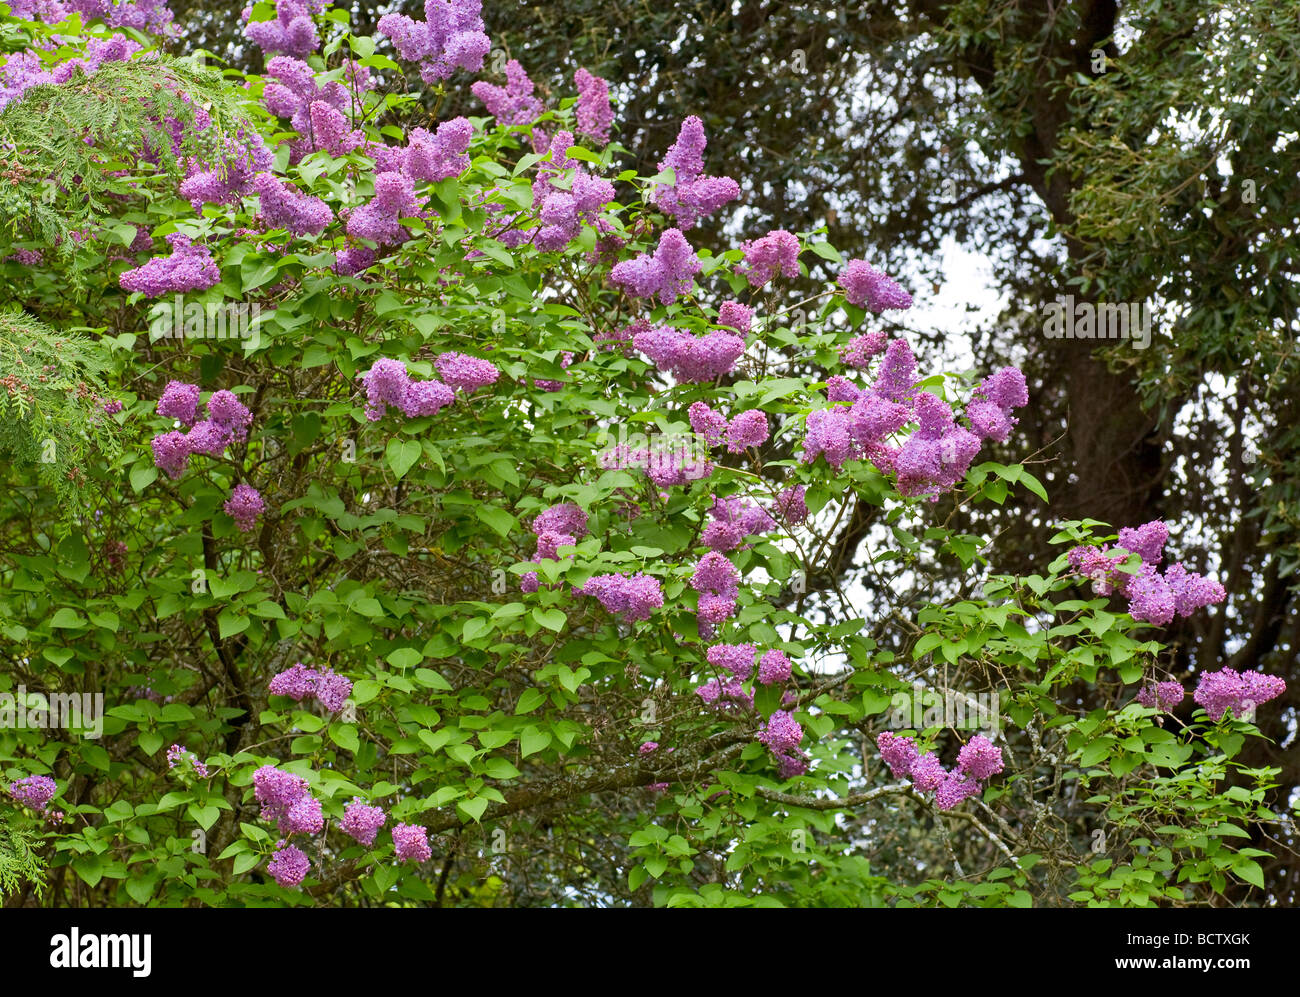 Blossom Lilac Tree With Violet Flowers In Spring Park Stock Photo